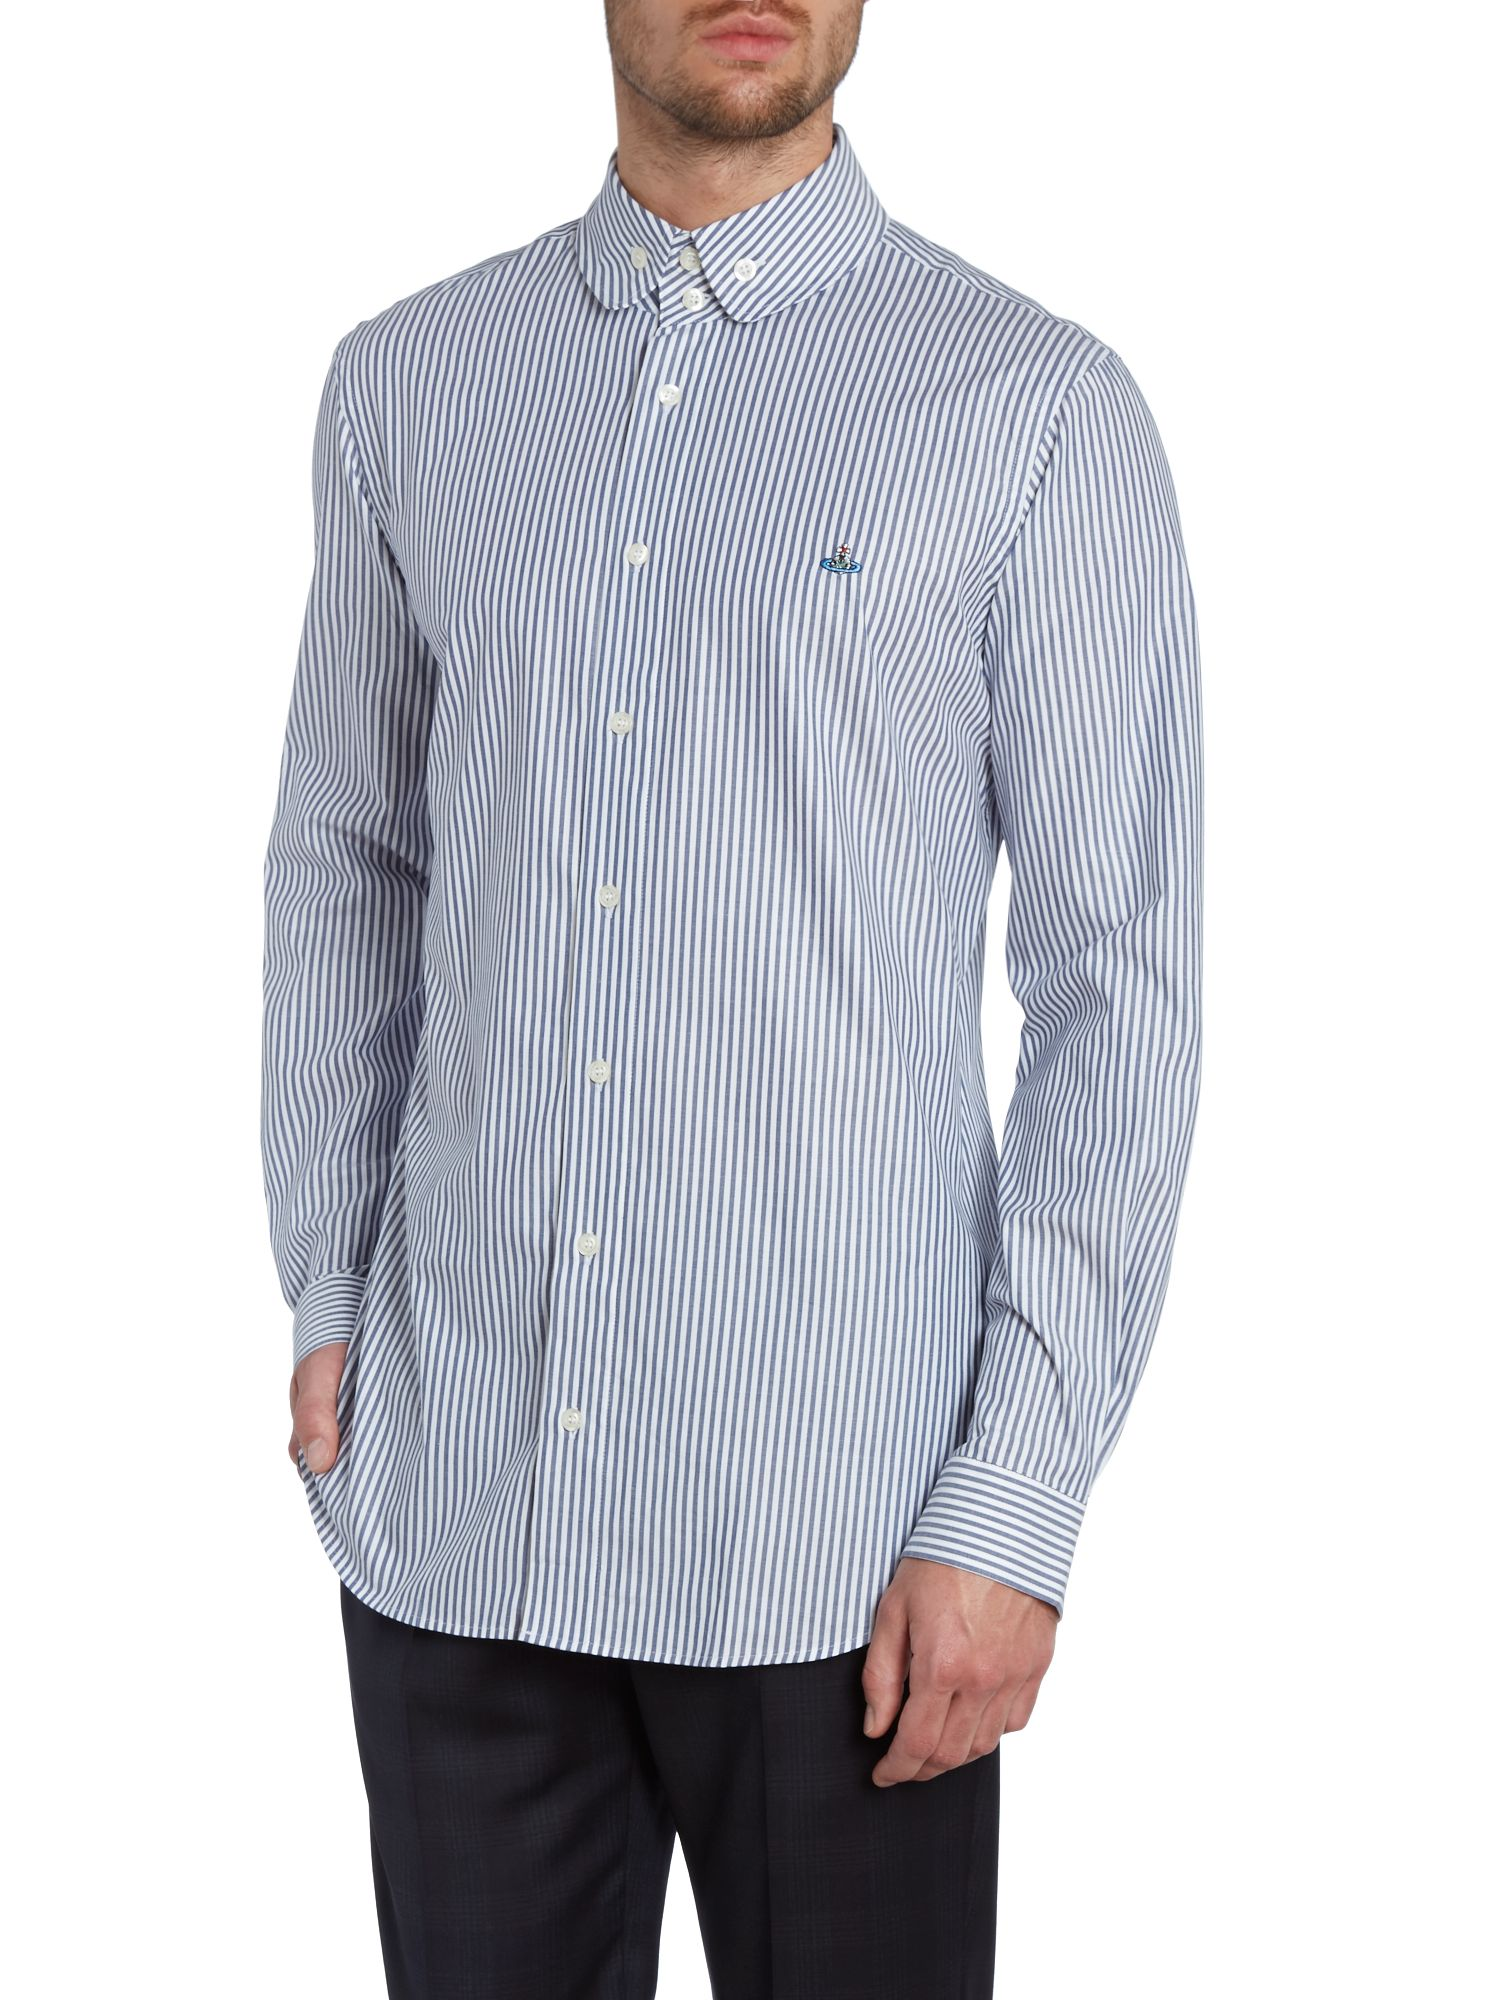 Stripe logo shirt